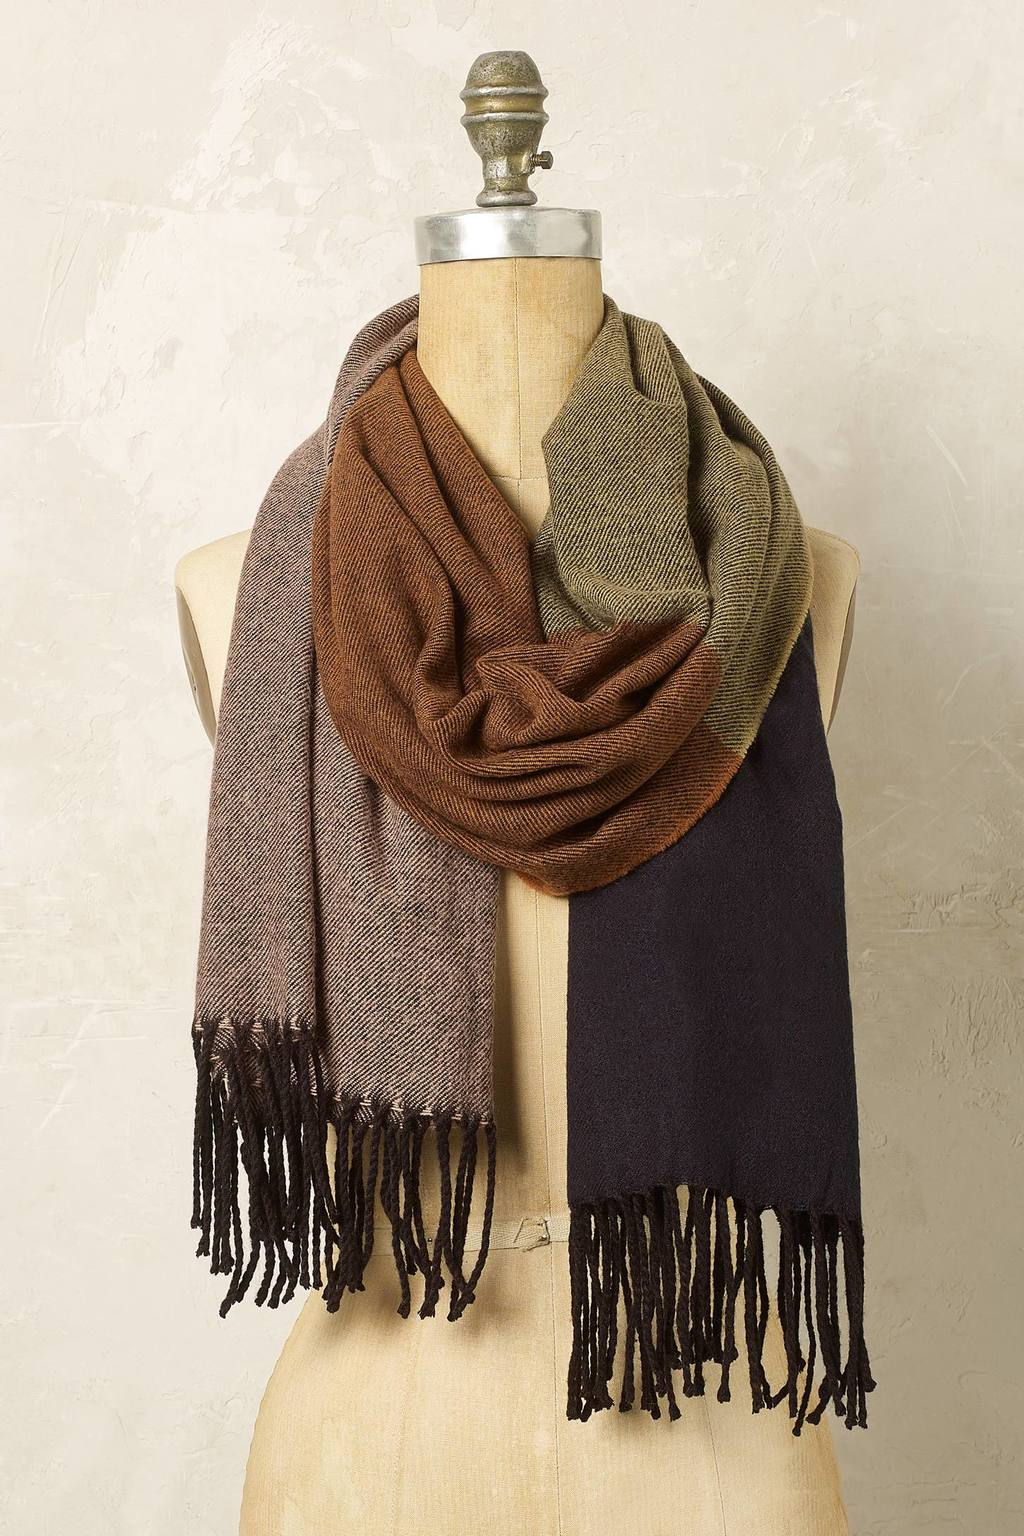 Suki Colour Block Scarf - predominant colour: chocolate brown; secondary colour: charcoal; occasions: casual, creative work; type of pattern: light; style: regular; size: standard; material: knits; embellishment: fringing; pattern: colourblock; multicoloured: multicoloured; season: a/w 2016; wardrobe: highlight